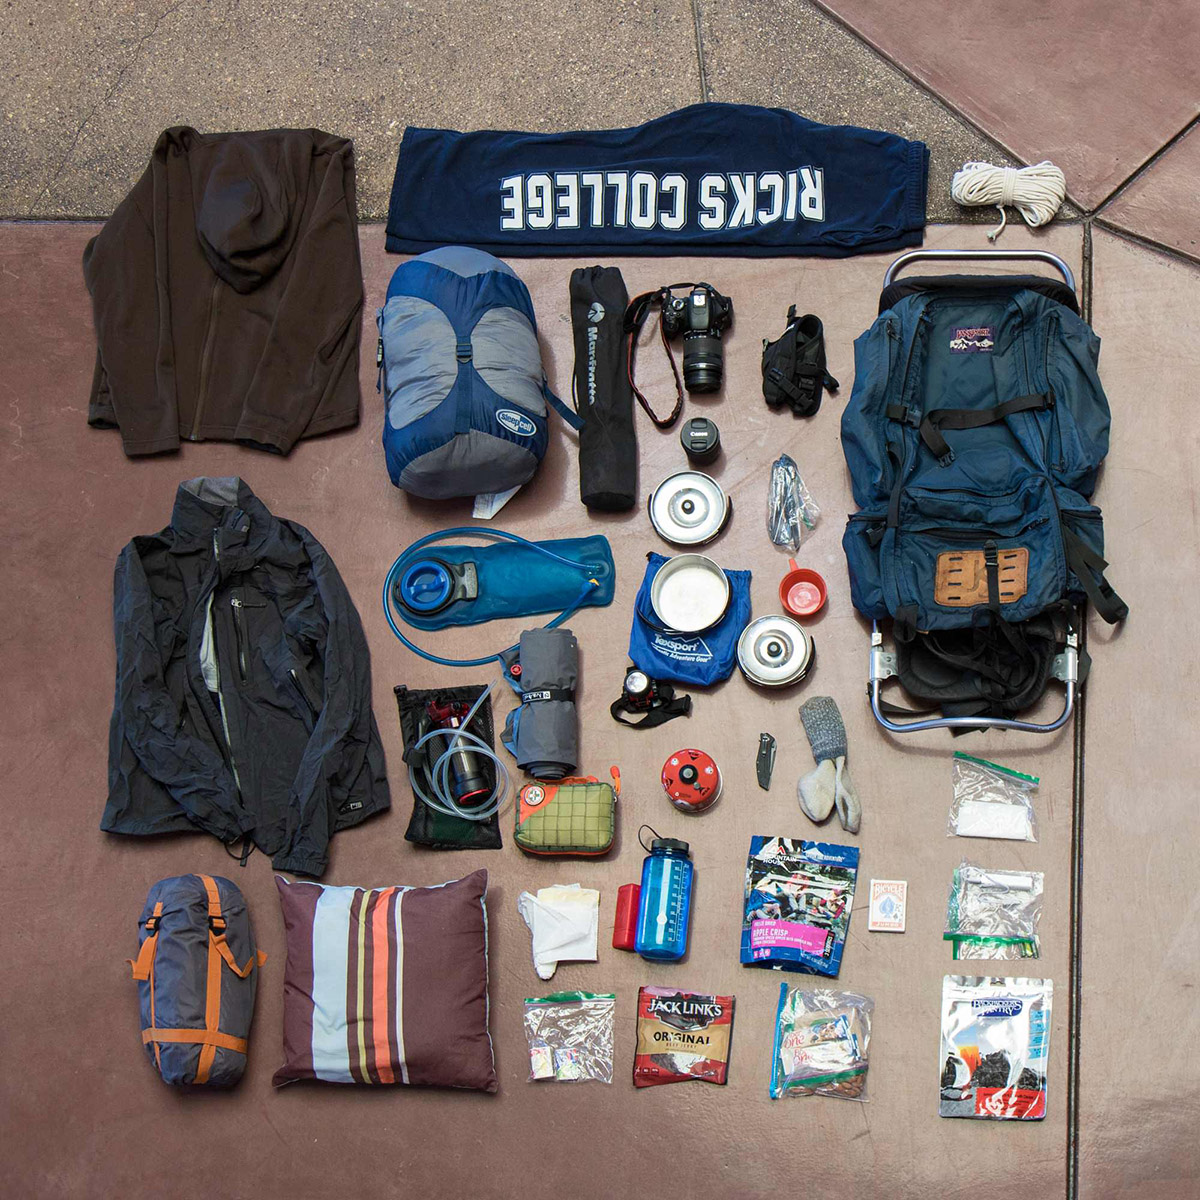 Backpacking gear arrayed for display